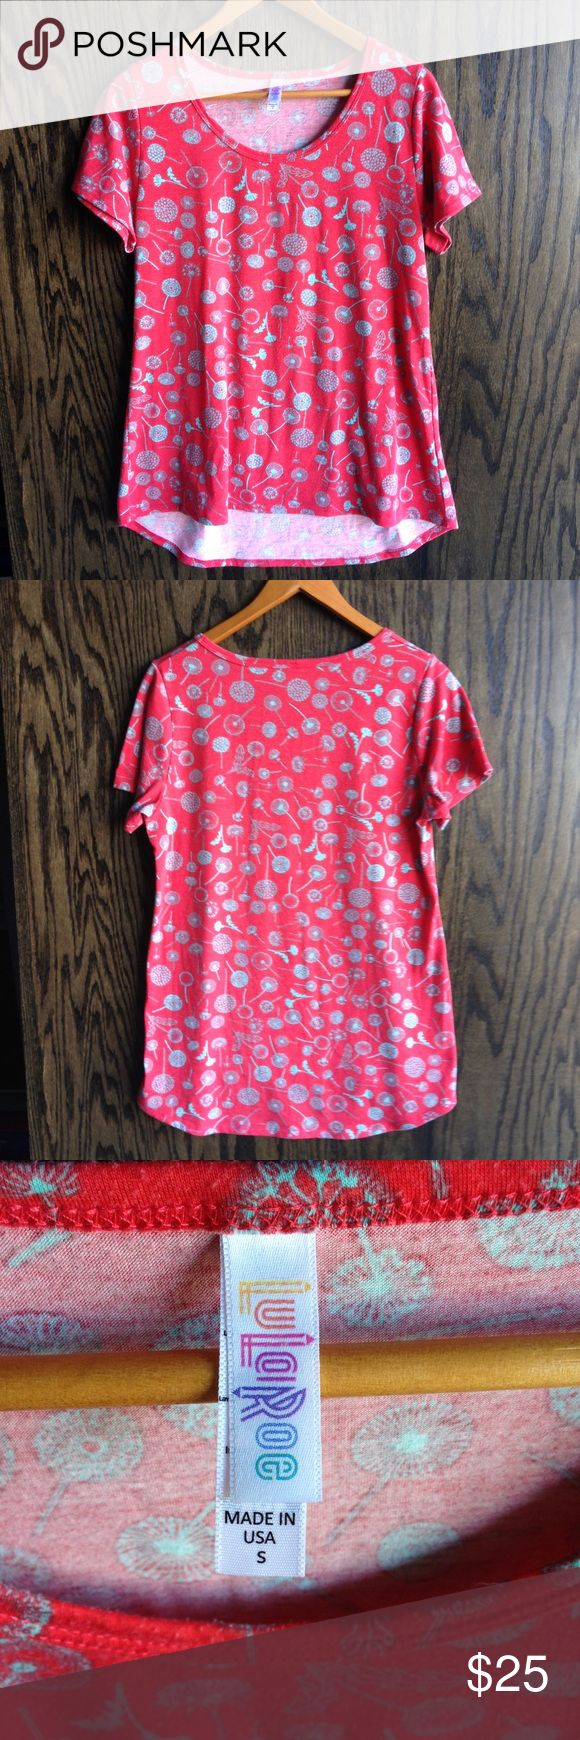 LuLaRoe Red Dandelion Print Gracie Top Pre loved condition. Bet gently used super soft LuLaRoe legging shirt. Perfect gift or a gorgeous gift to yourself 😊 LuLaRoe Tops Tees - Short Sleeve